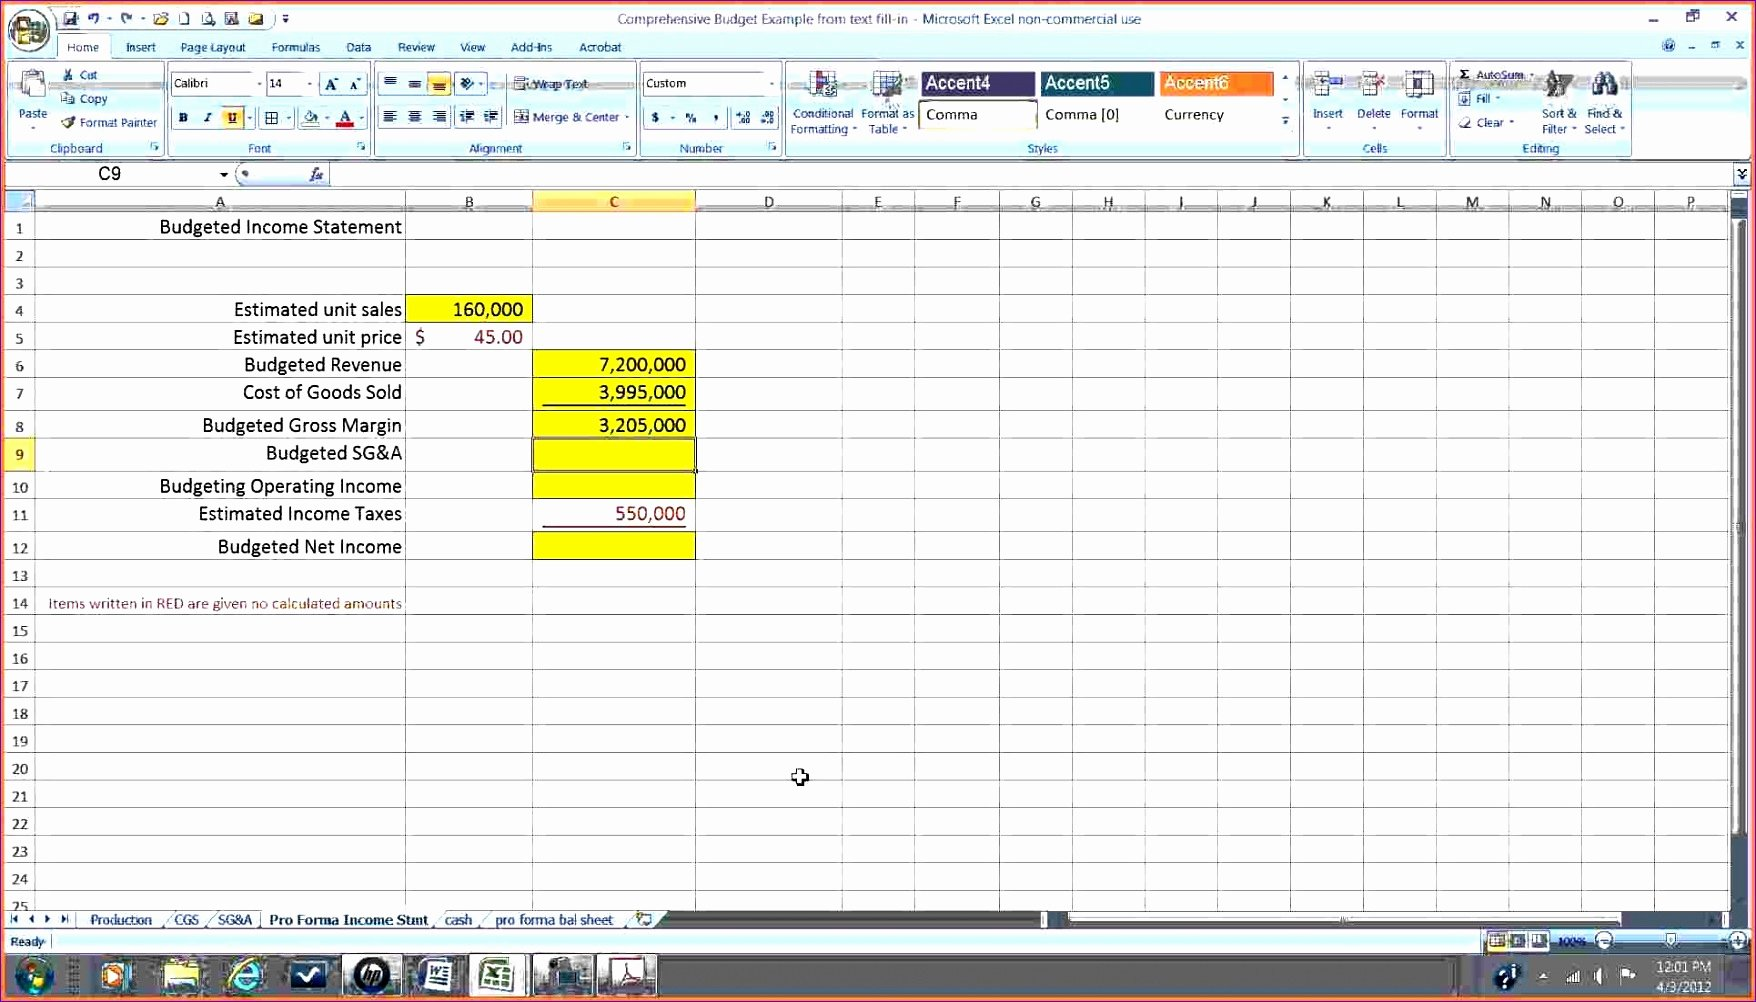 Financial Statements Excel Template New 6 Financial Statements Template Excel Exceltemplates